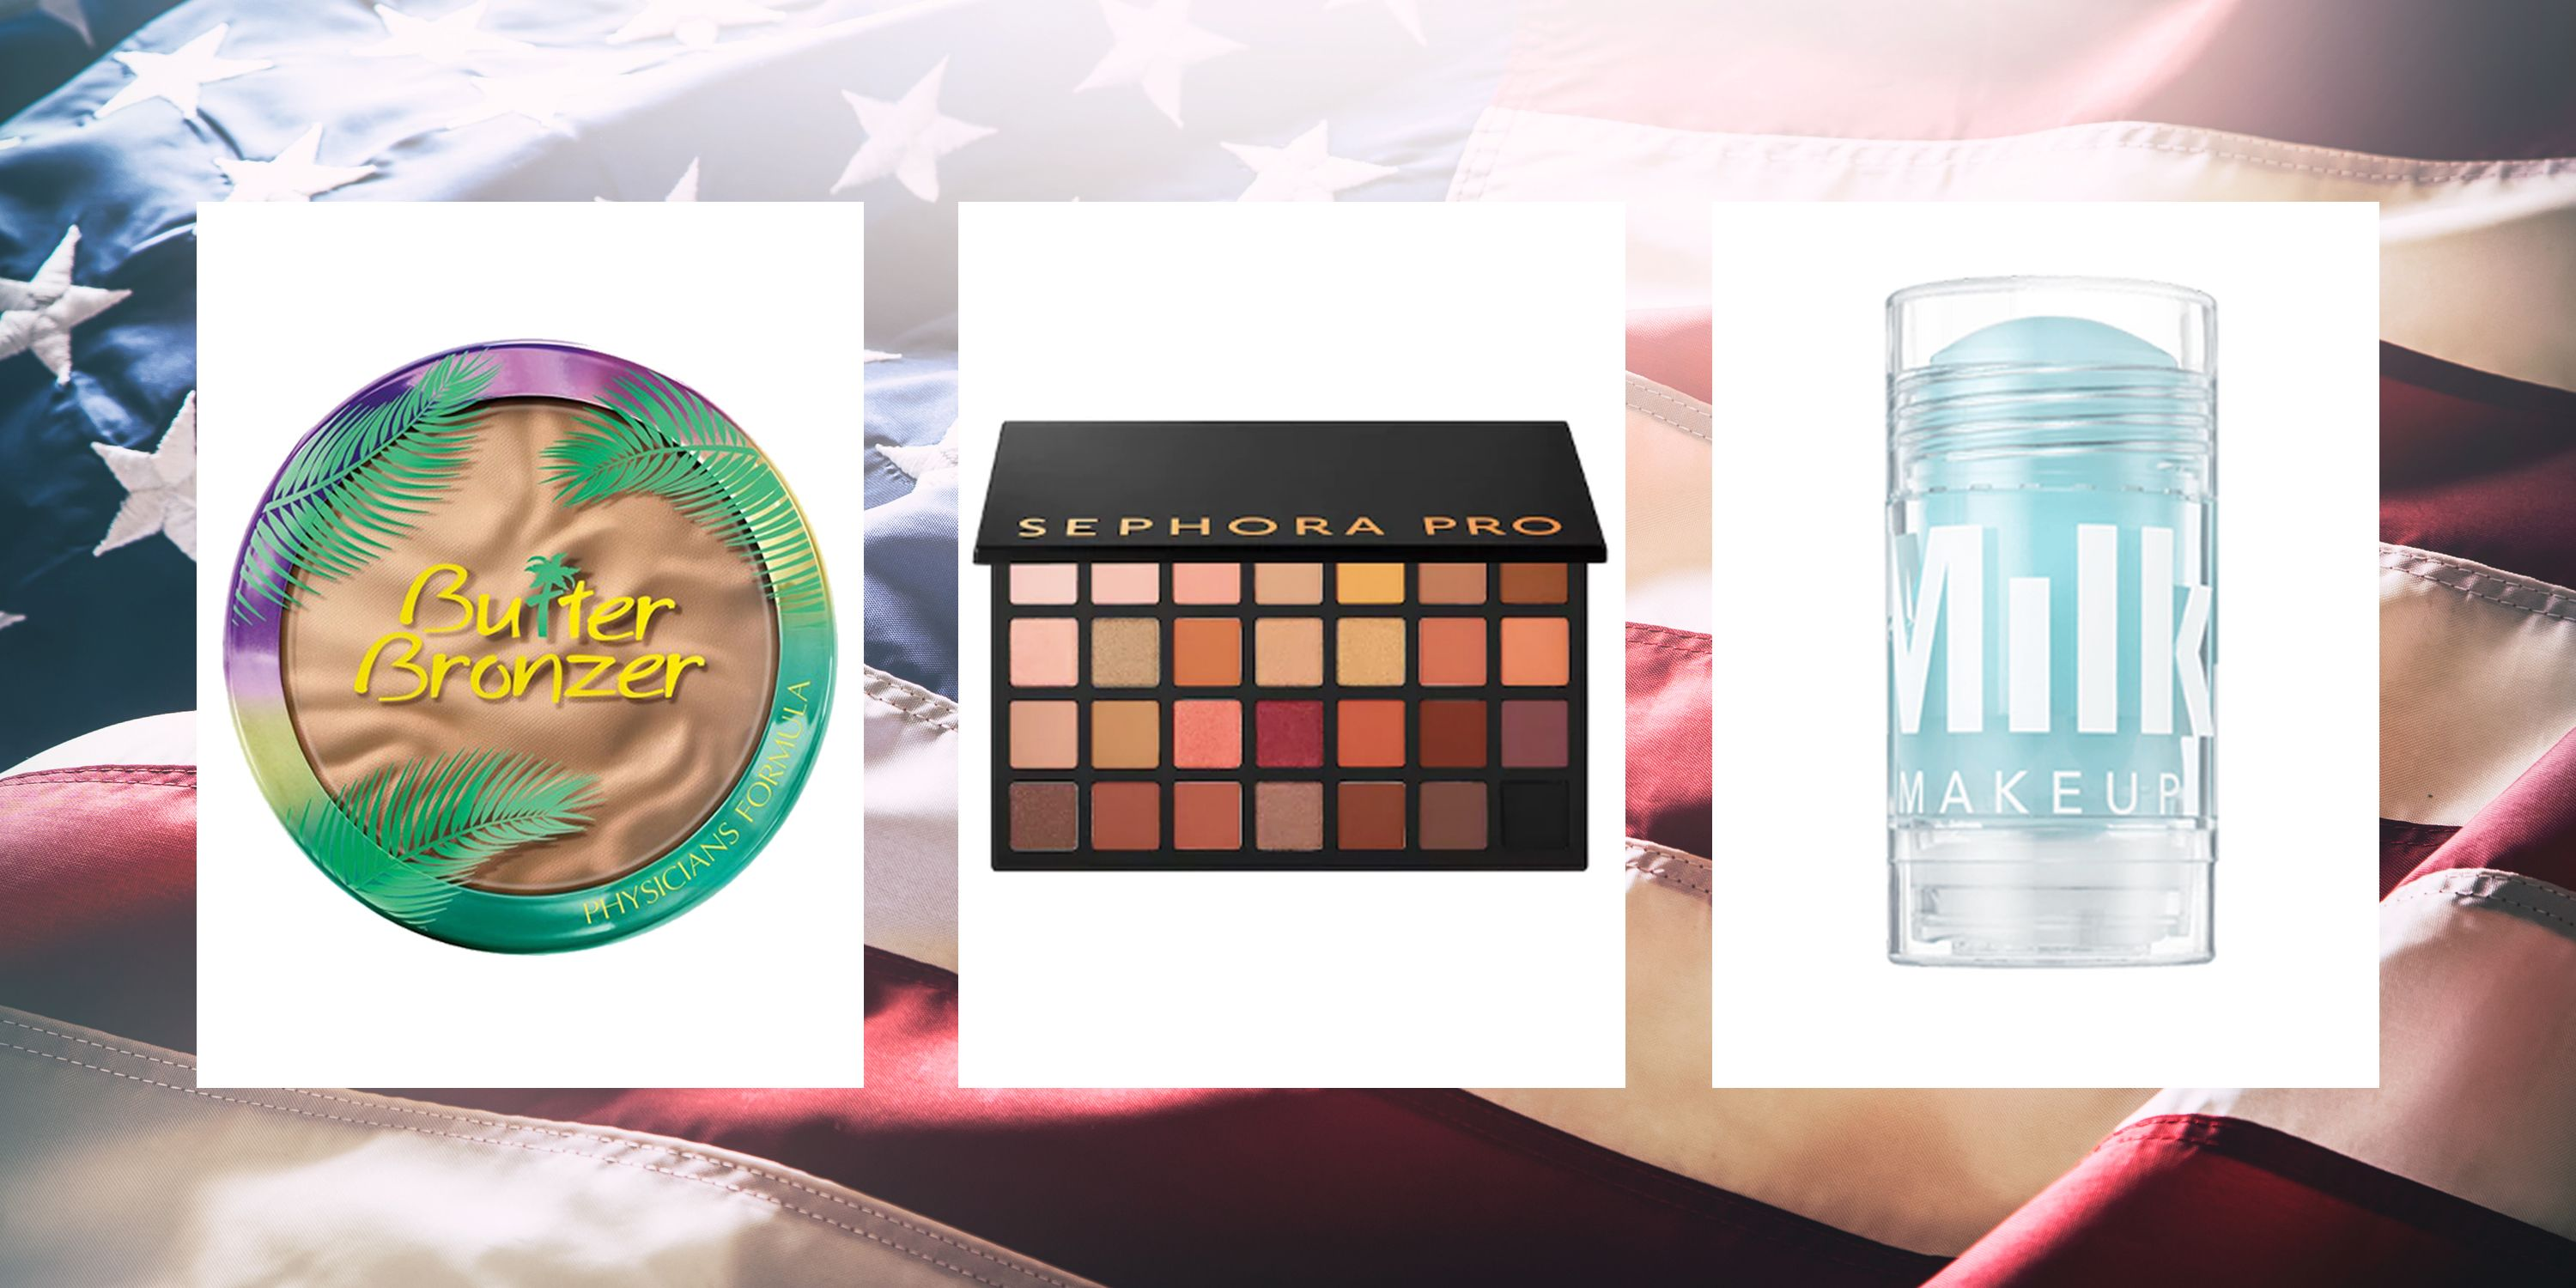 Best place to buy makeup in american